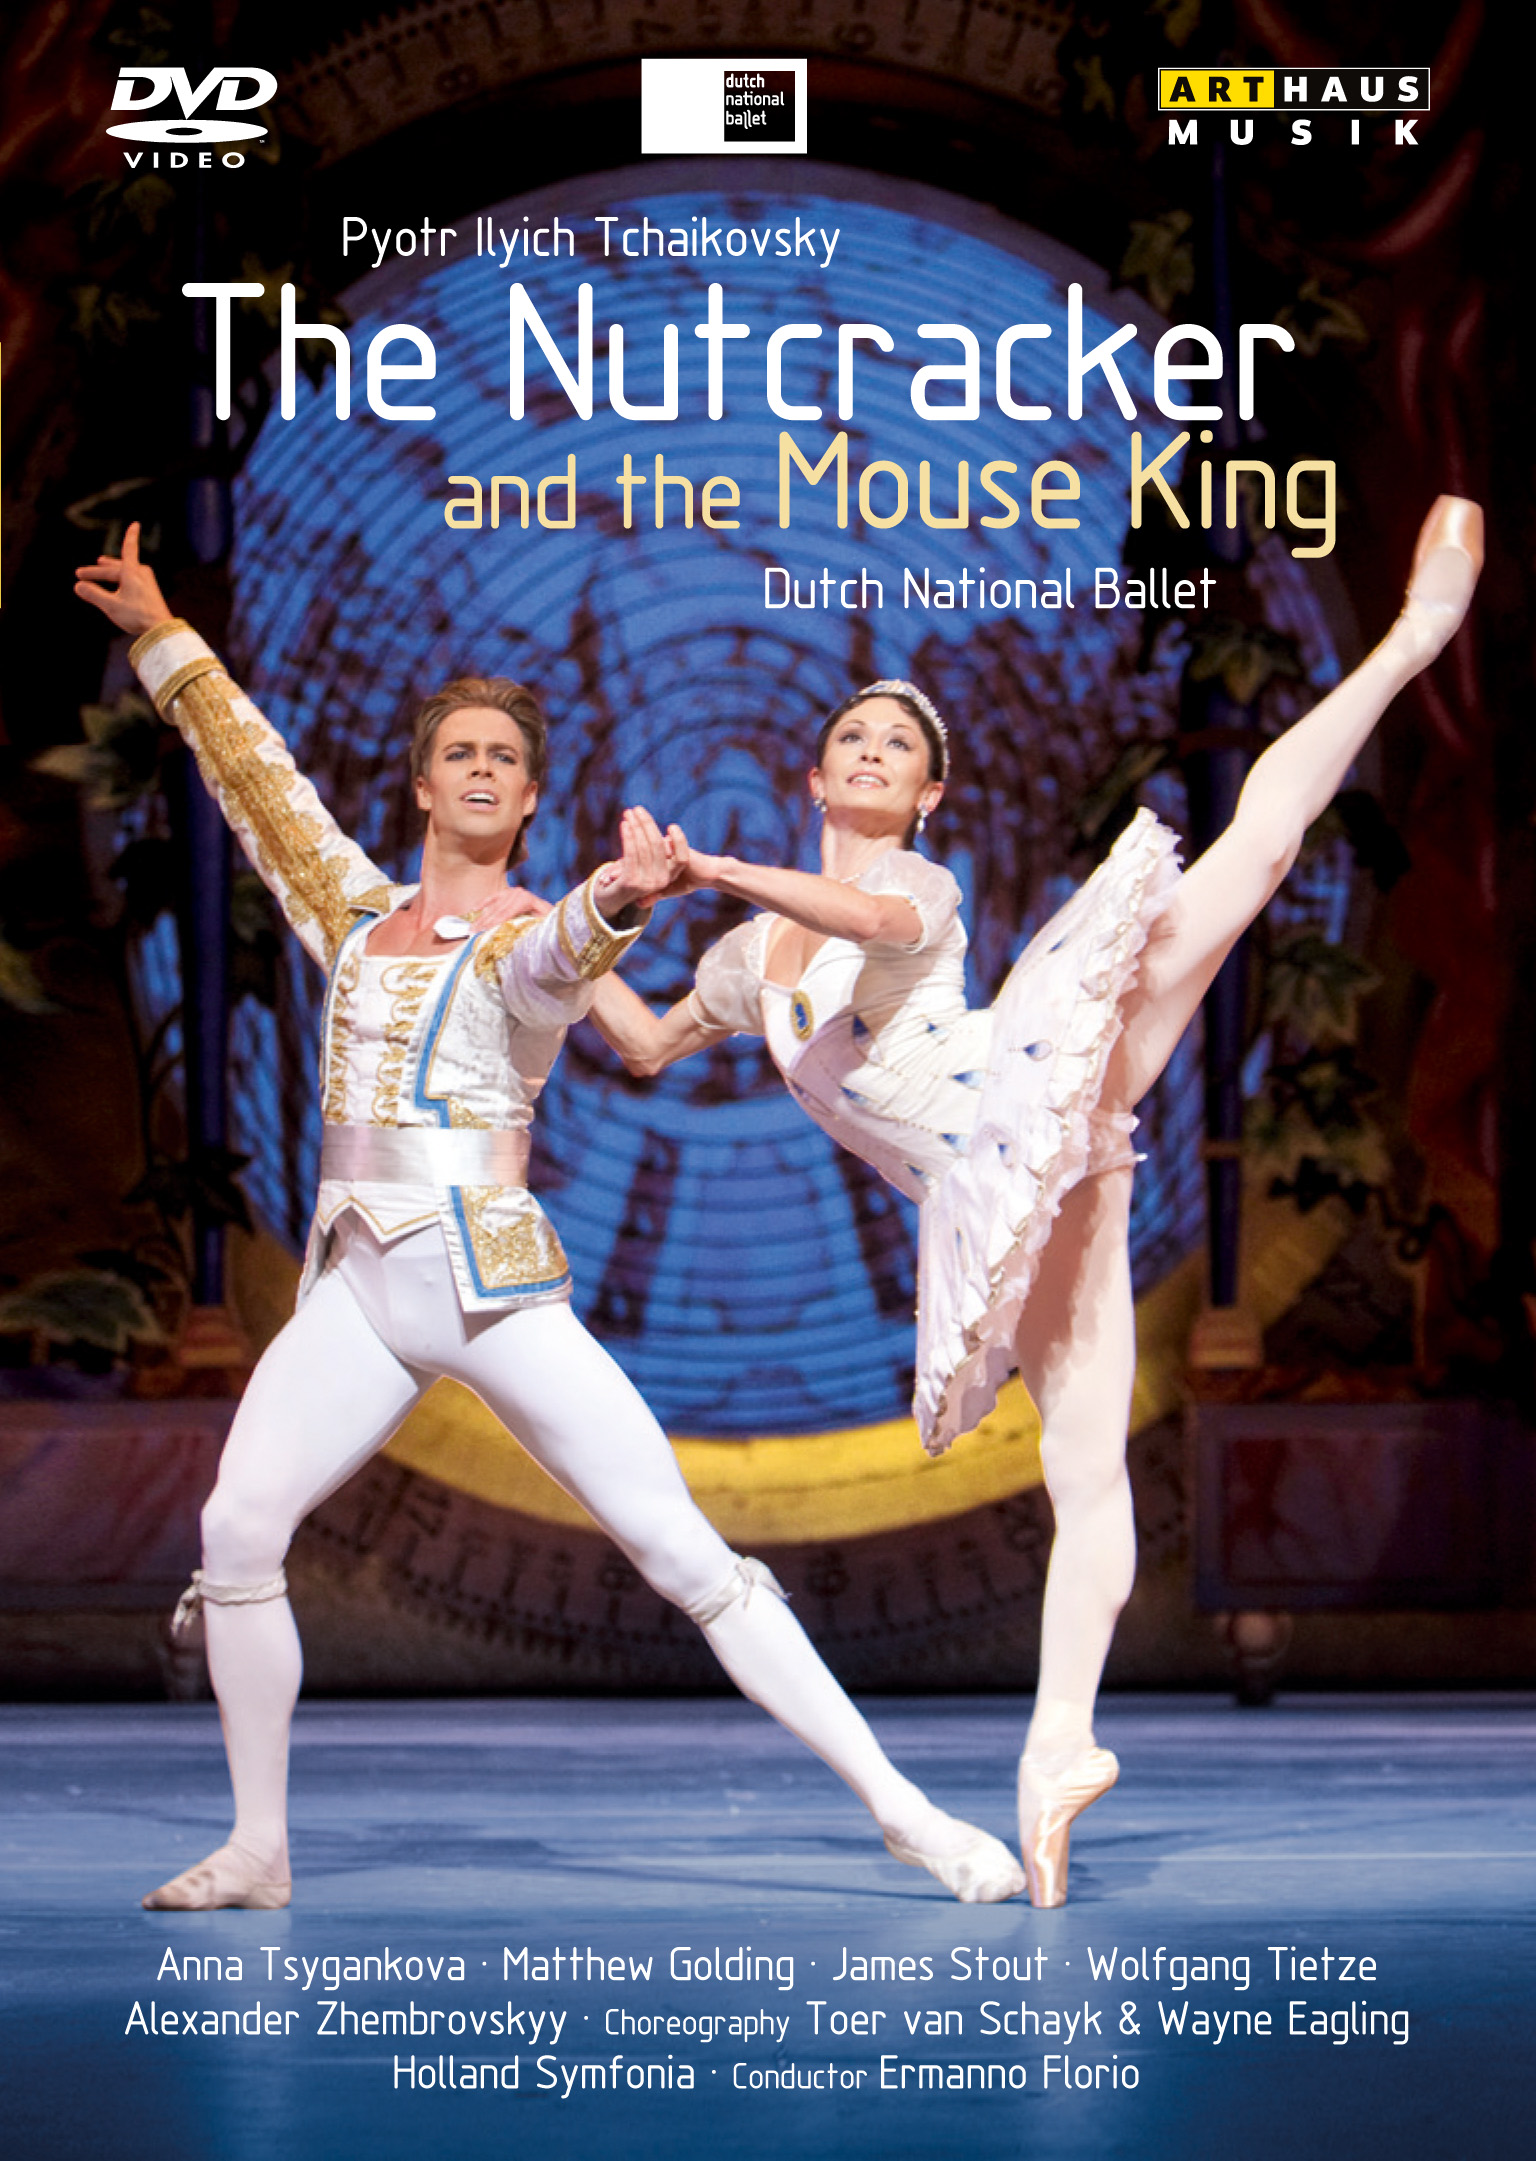 The Nutcracker and the Mouse King (Dutch National Ballet)